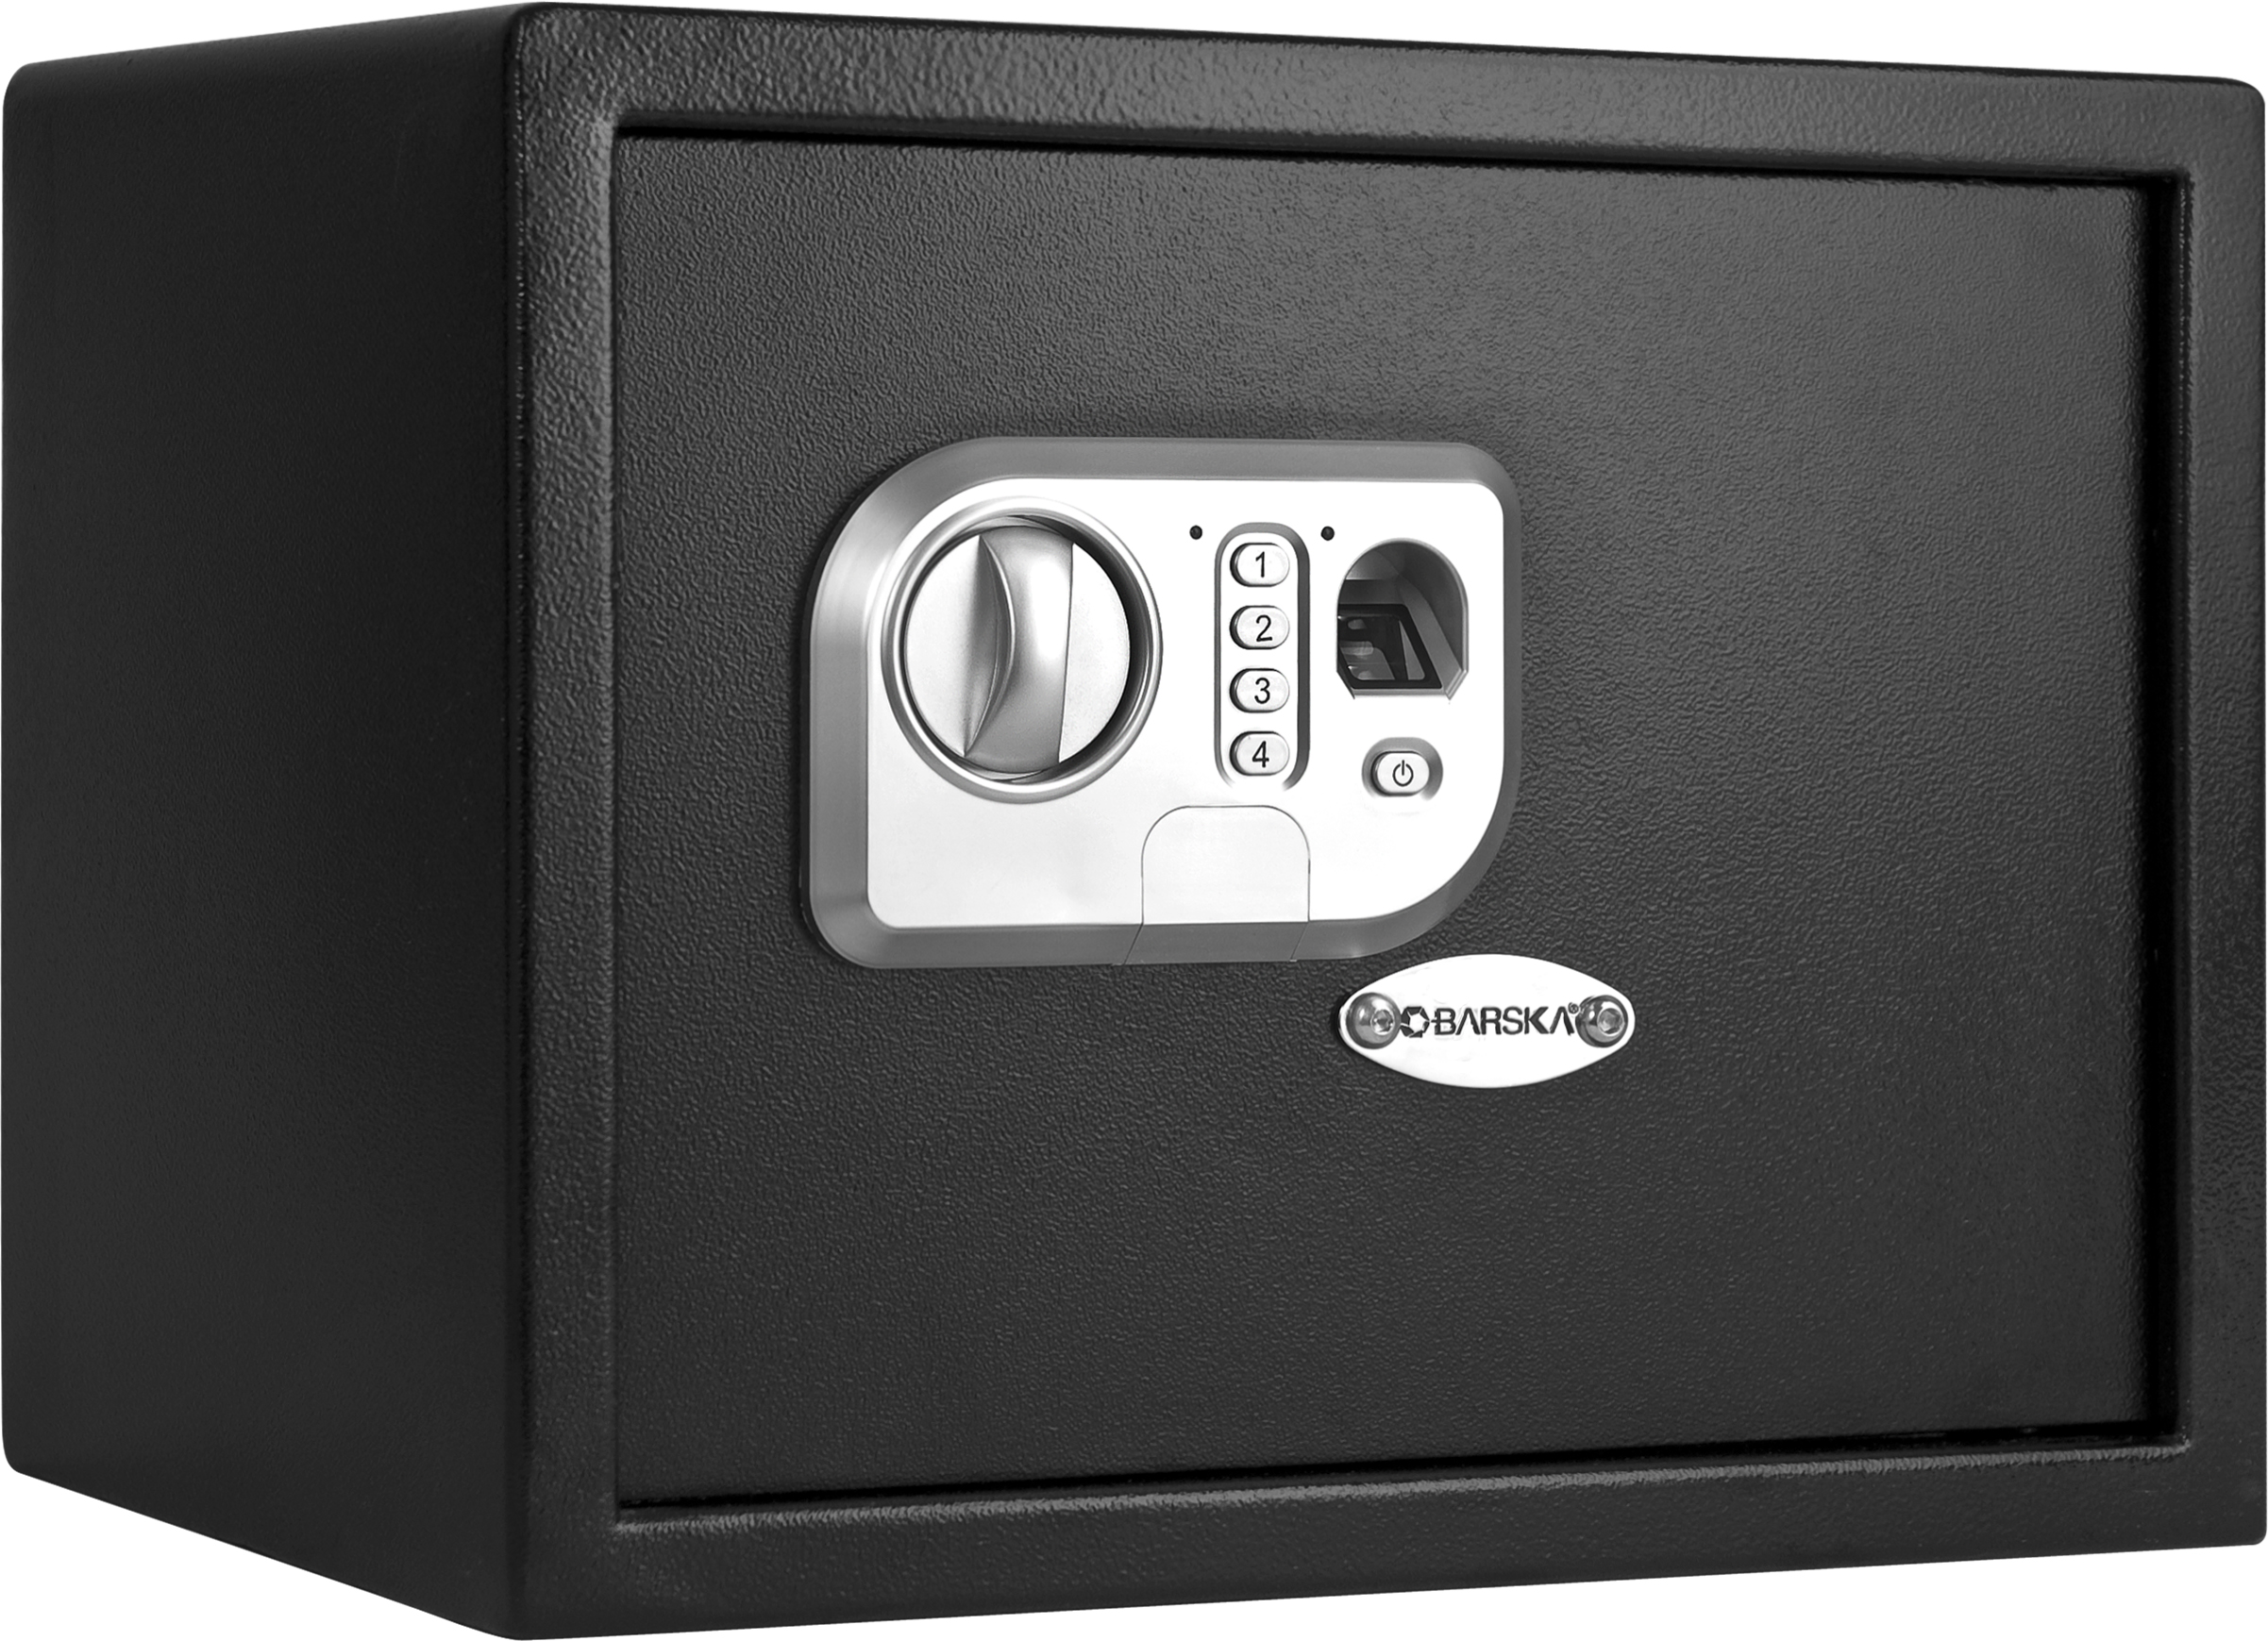 Fingerprint Safes Intelligent Biometric Controls Store